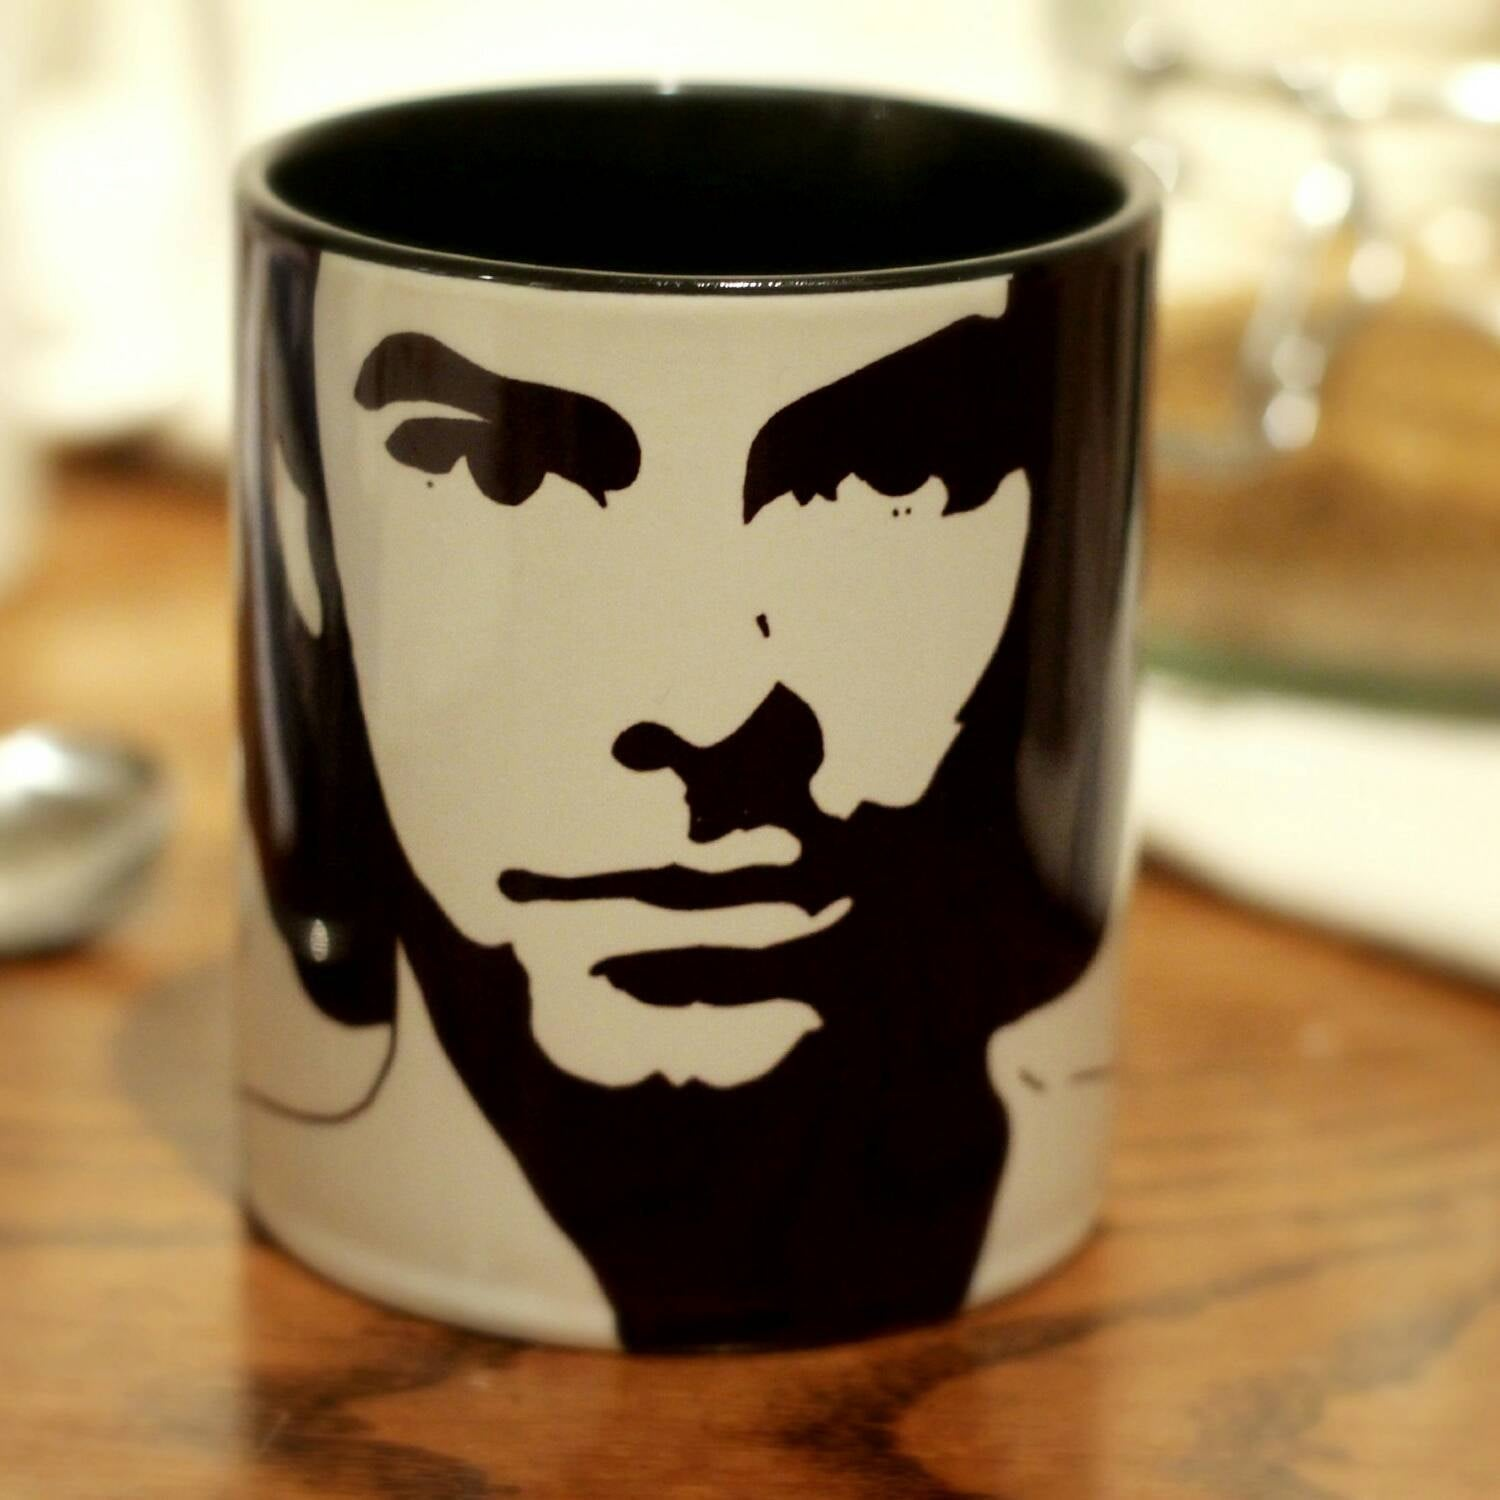 Aidan Turner, , Being Human, Kili, The Hobbit, The Mortal Instruments, Hand Printed Mug - ByCandlelight27